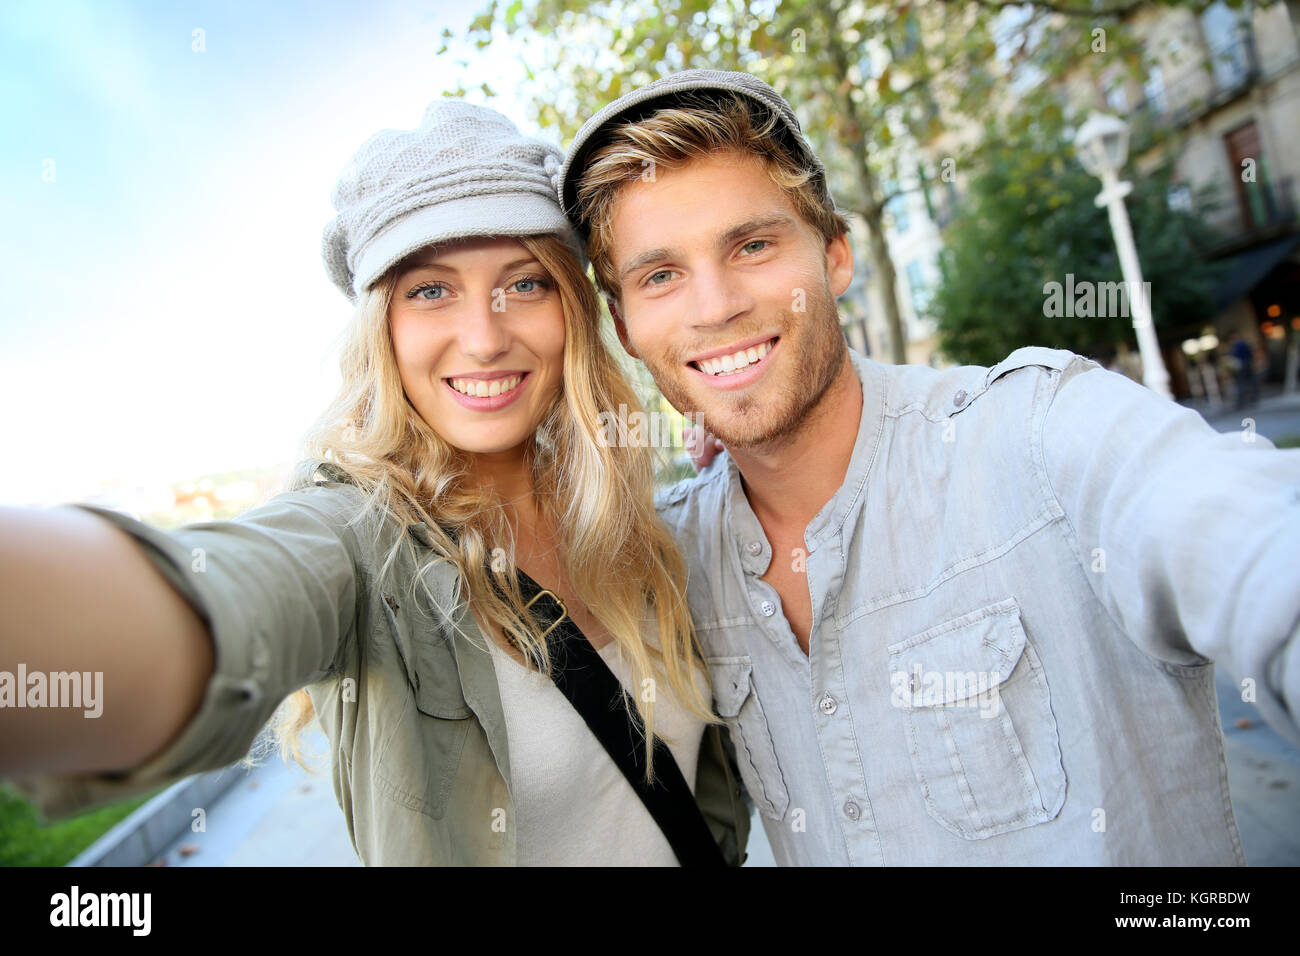 Cheerful trendy couple taking self-portrait picture Stock Photo